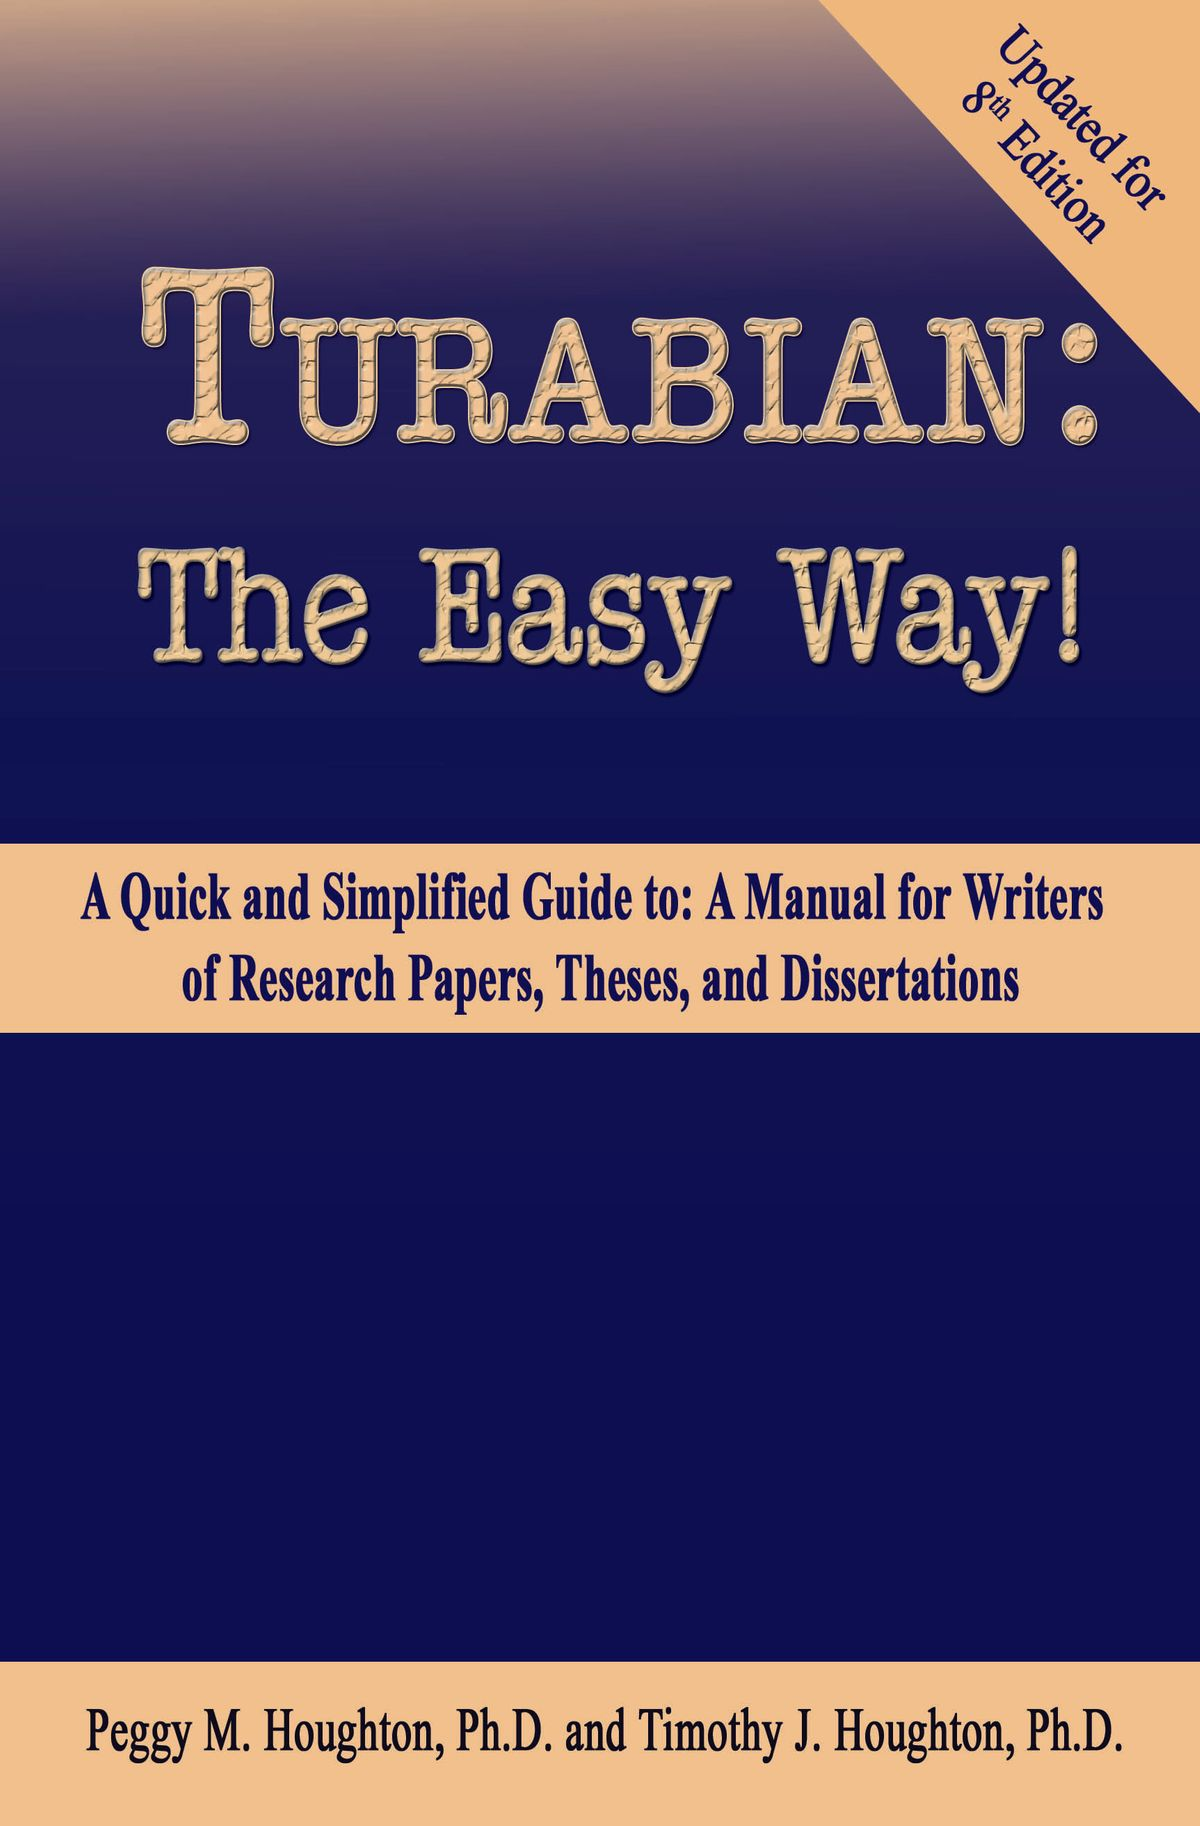 018 Research Paper Turabian The Easy Way For 8th Edition Manual Writers Of Papers Theses And Amazing A Dissertations Pdf Full